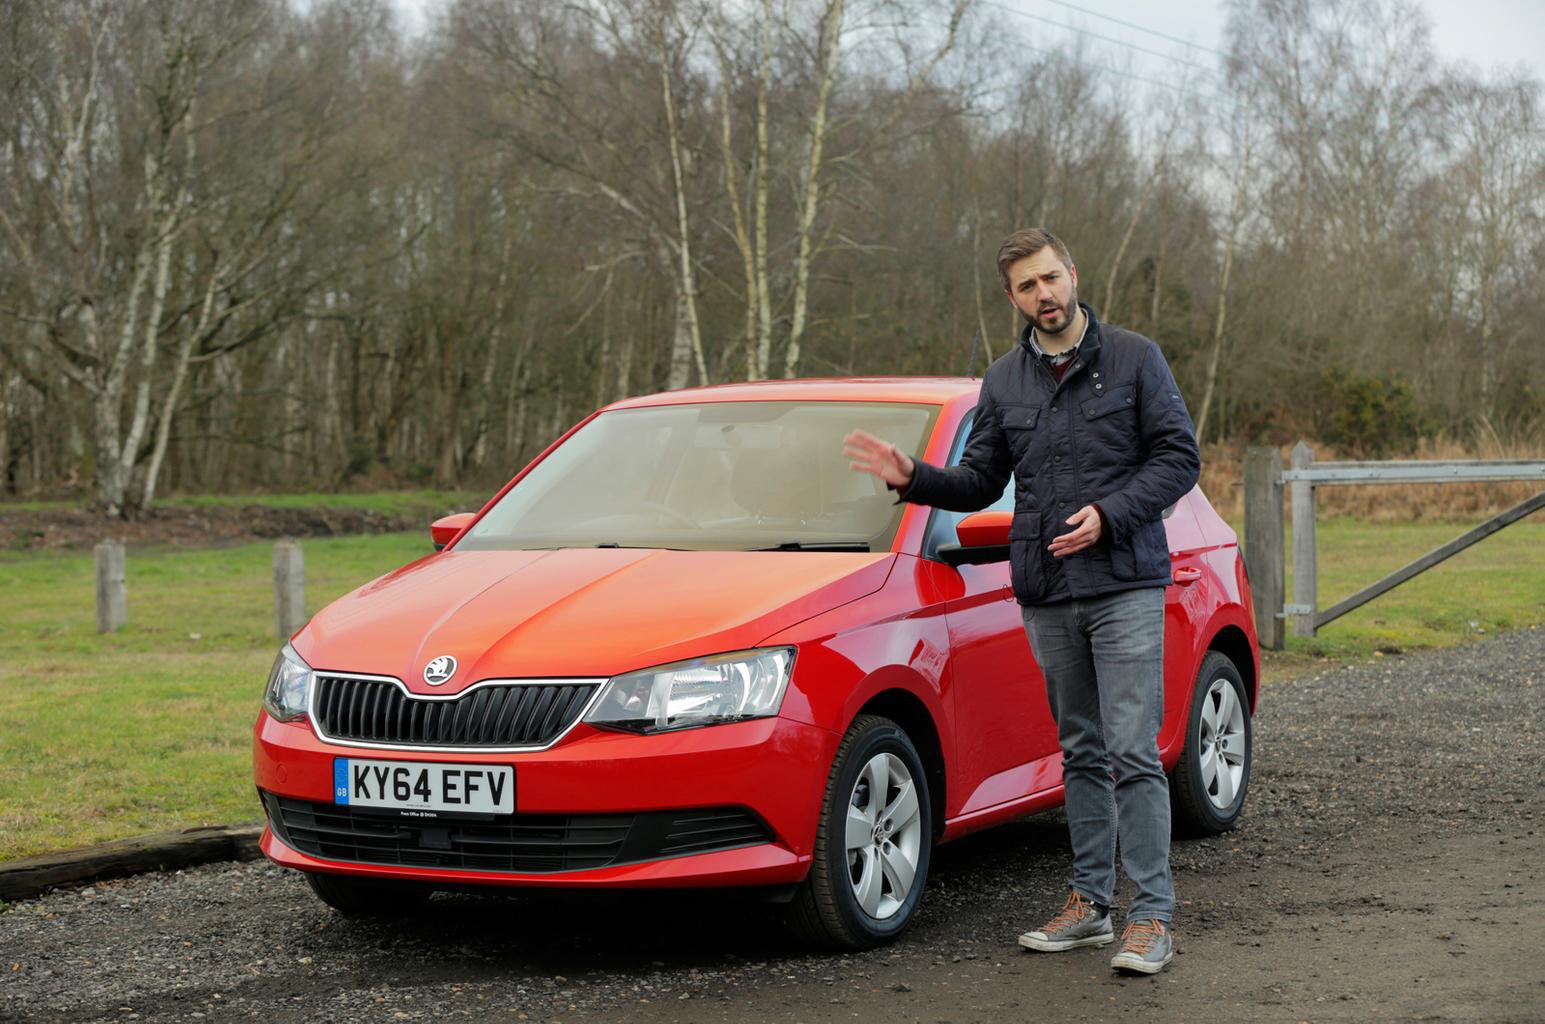 Video: Skoda Fabia video review